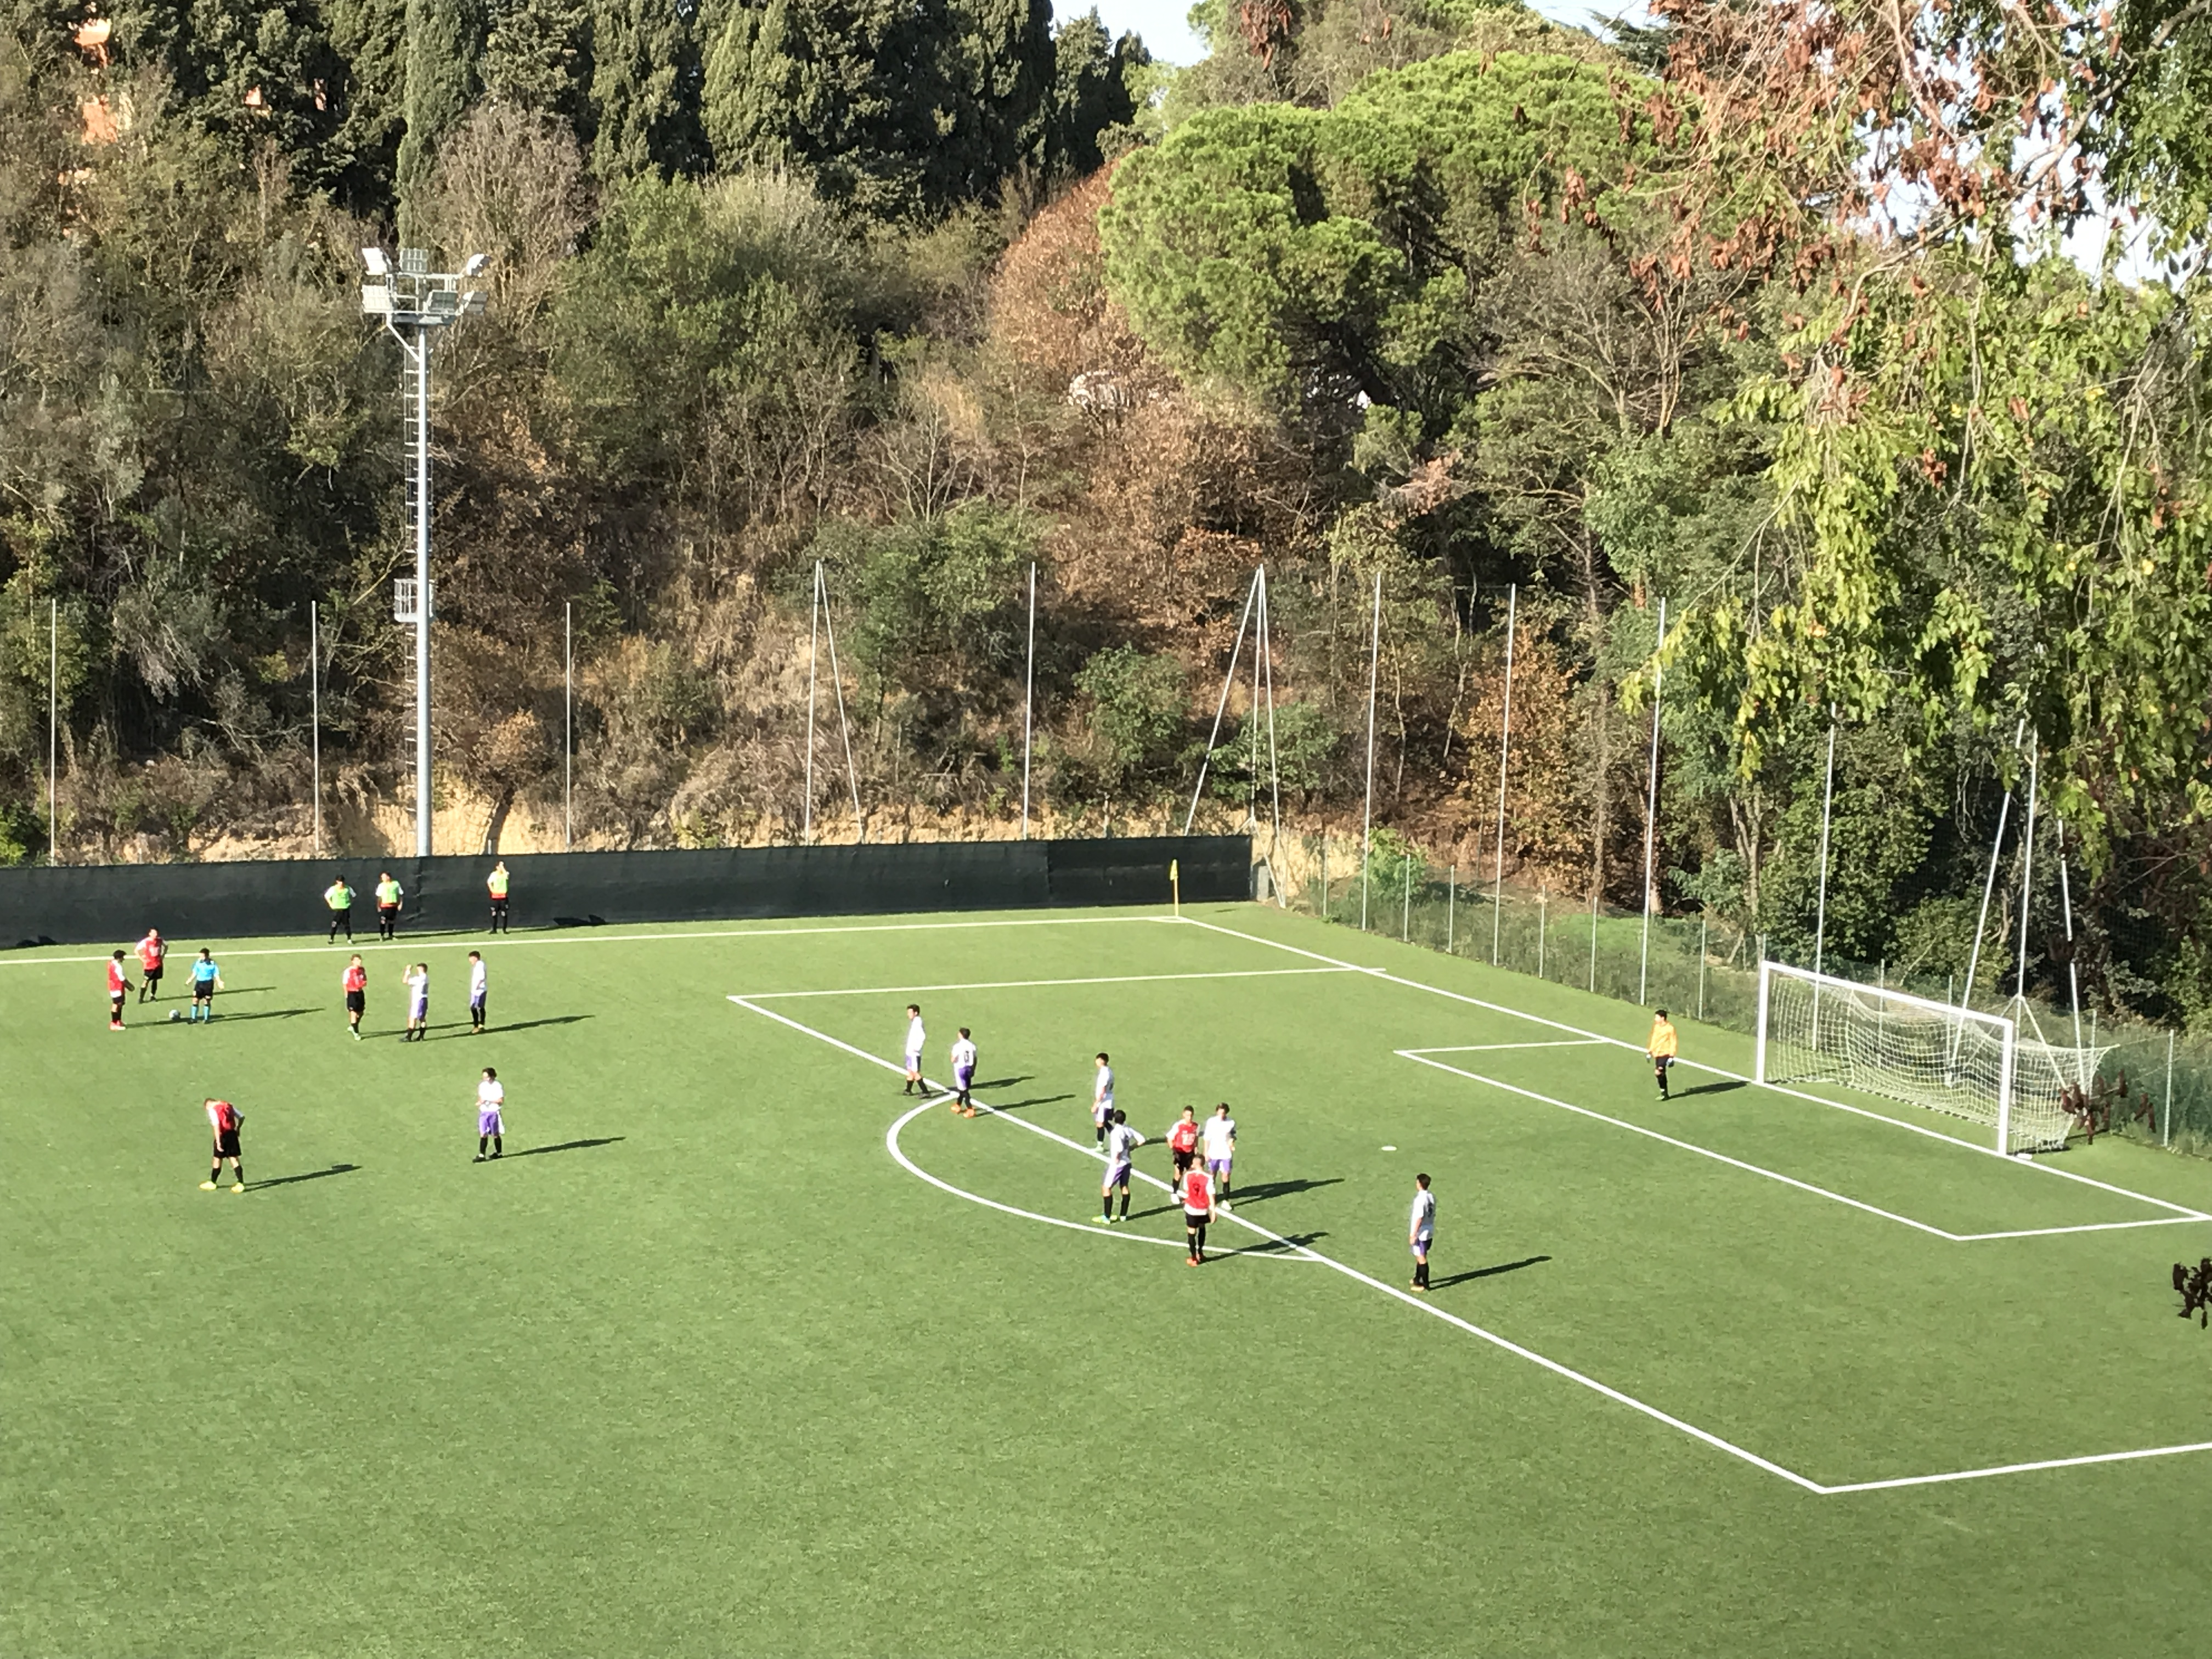 Juniores Elite | Boreale Don Orione – Colleferro 1-1, la cronaca